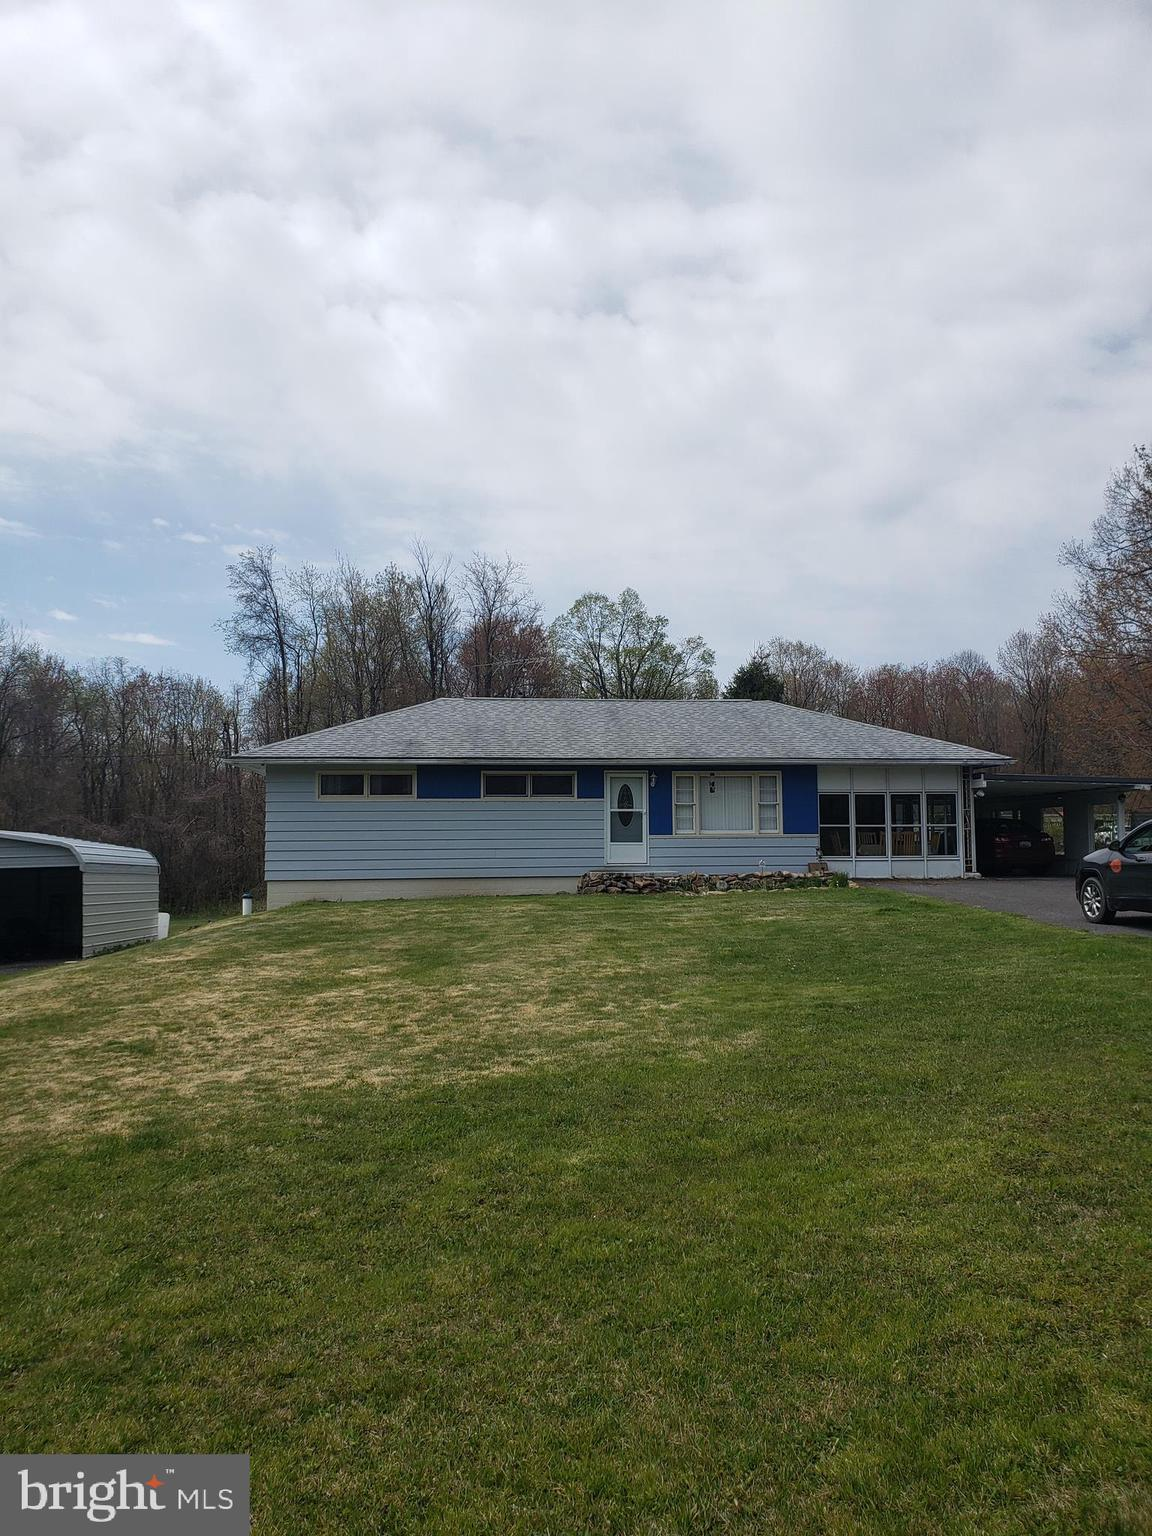 Nice 3 Bedroom 1 bath home on almost 1 acre of land. Very open back yard with hot tub and firepit. N